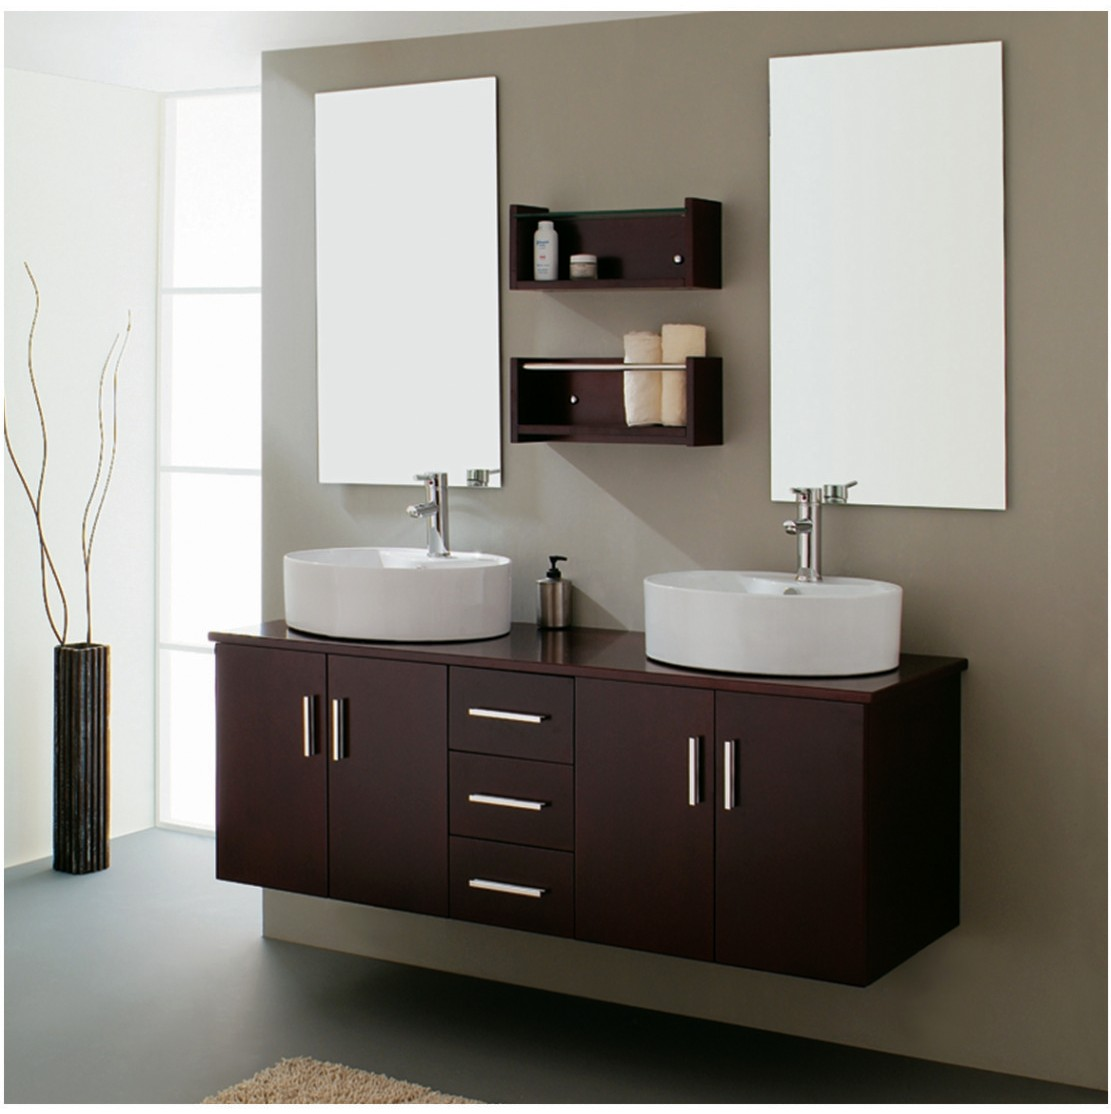 Modern bathroom vanity milano iii for Restroom vanity